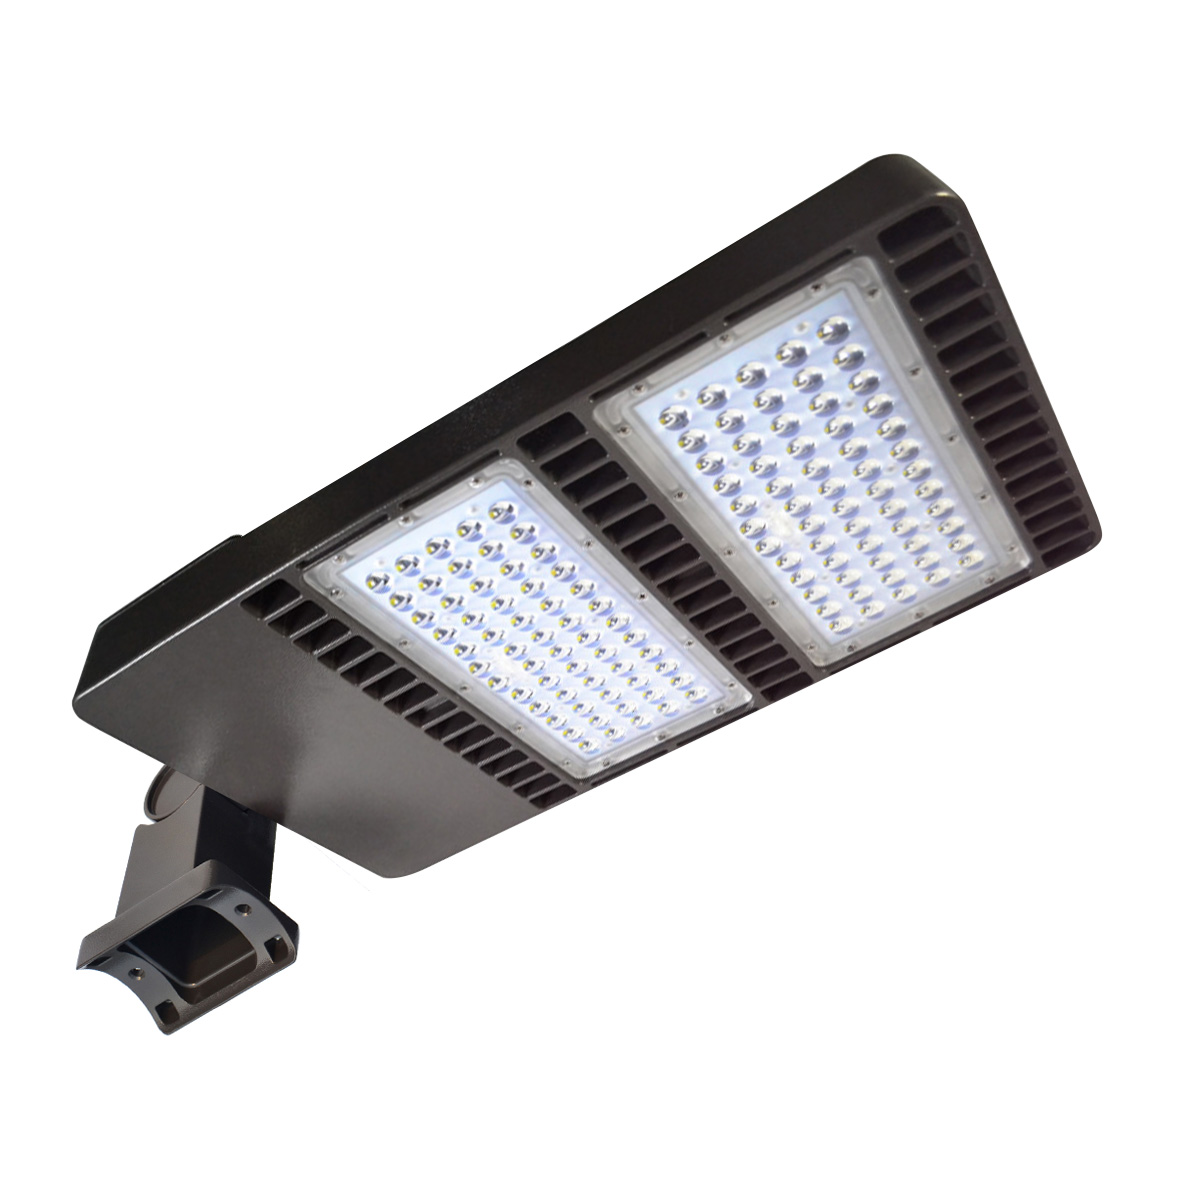 24W LED Parking Lot Light Outdoor Lighting 2880lm 5000K Led Shoebox Light